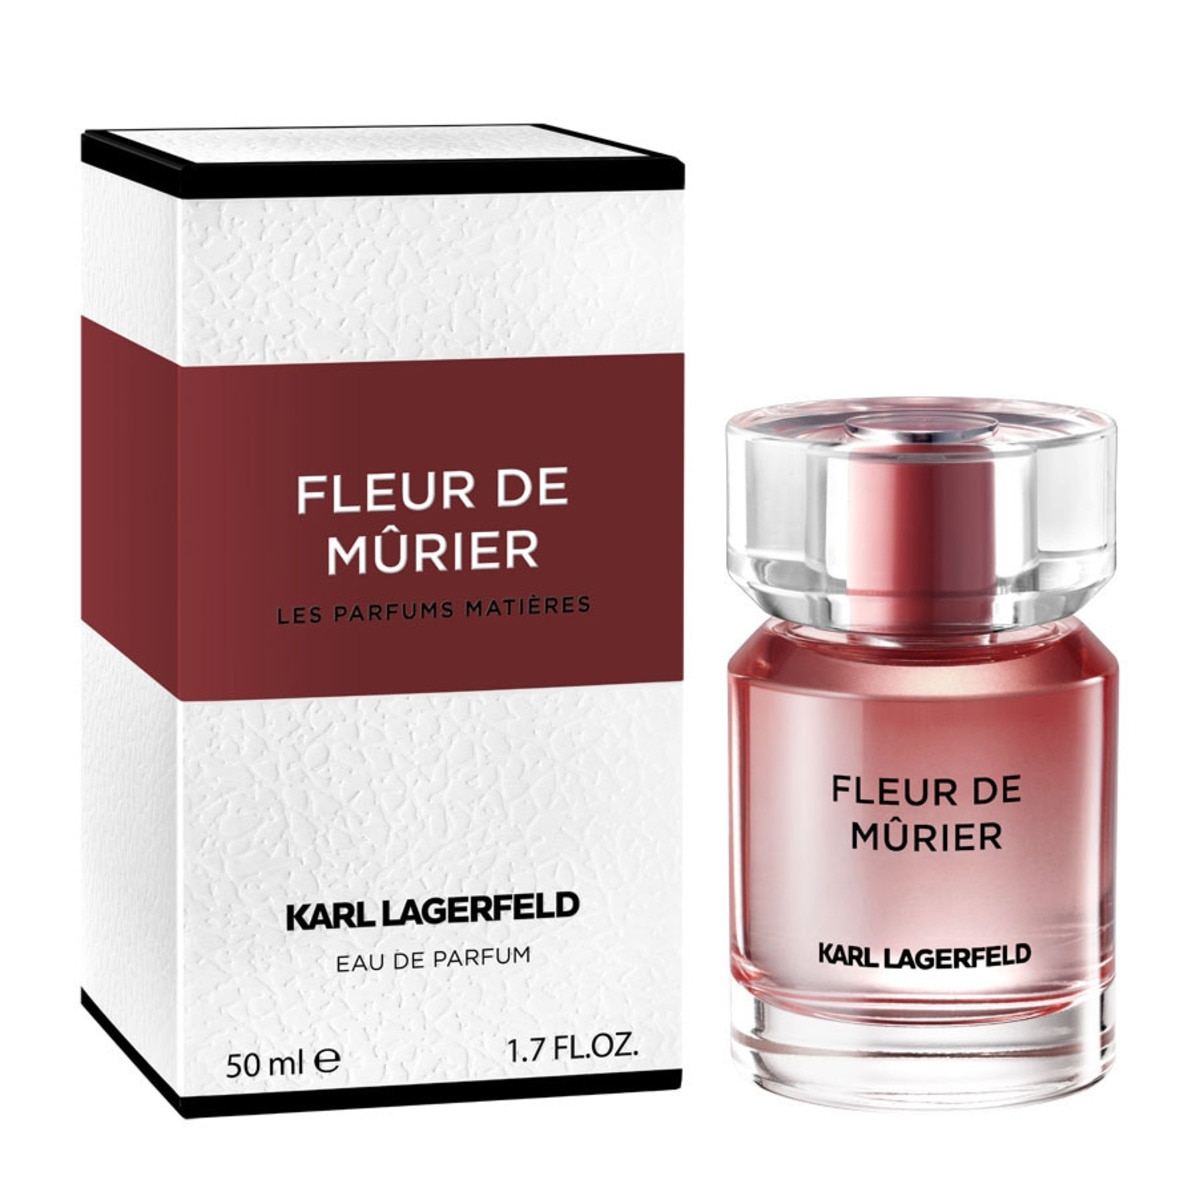 Karl Lagerfeld's New Perfume Smells LikeBooks picture